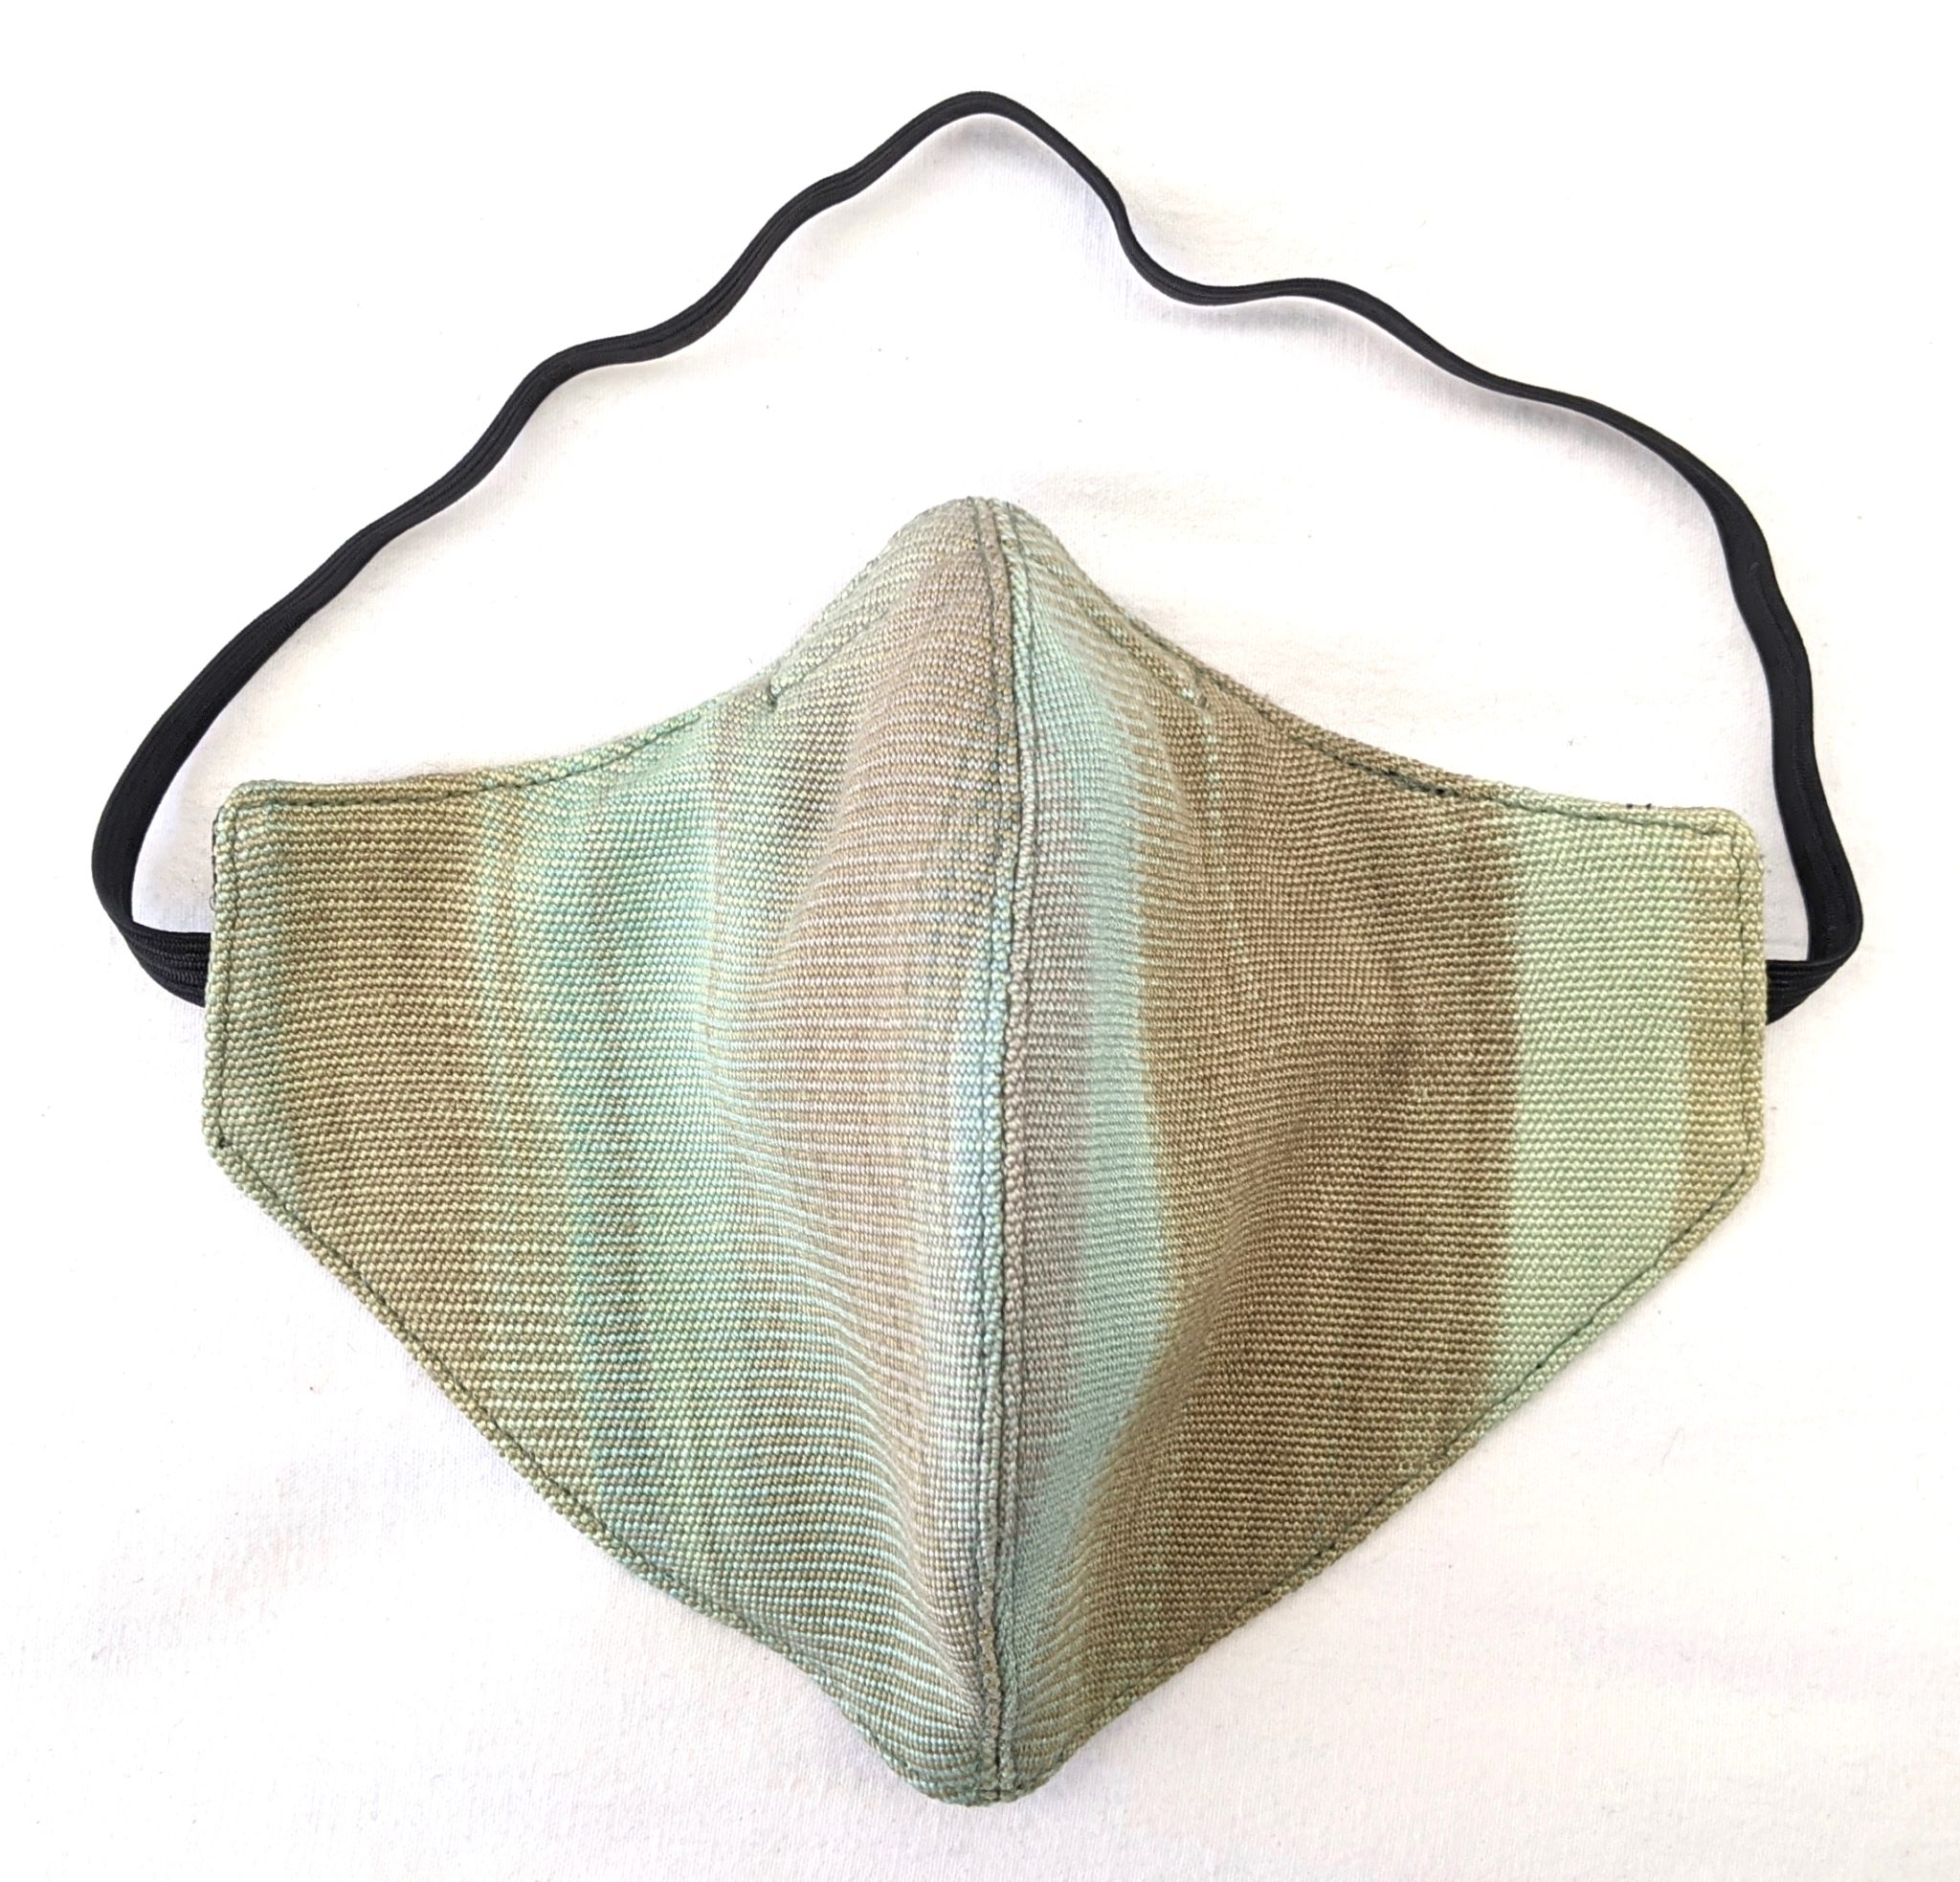 Handwoven Lightweight Bamboo Face Mask with Elastic Behind Head - Pale Greens, Beige